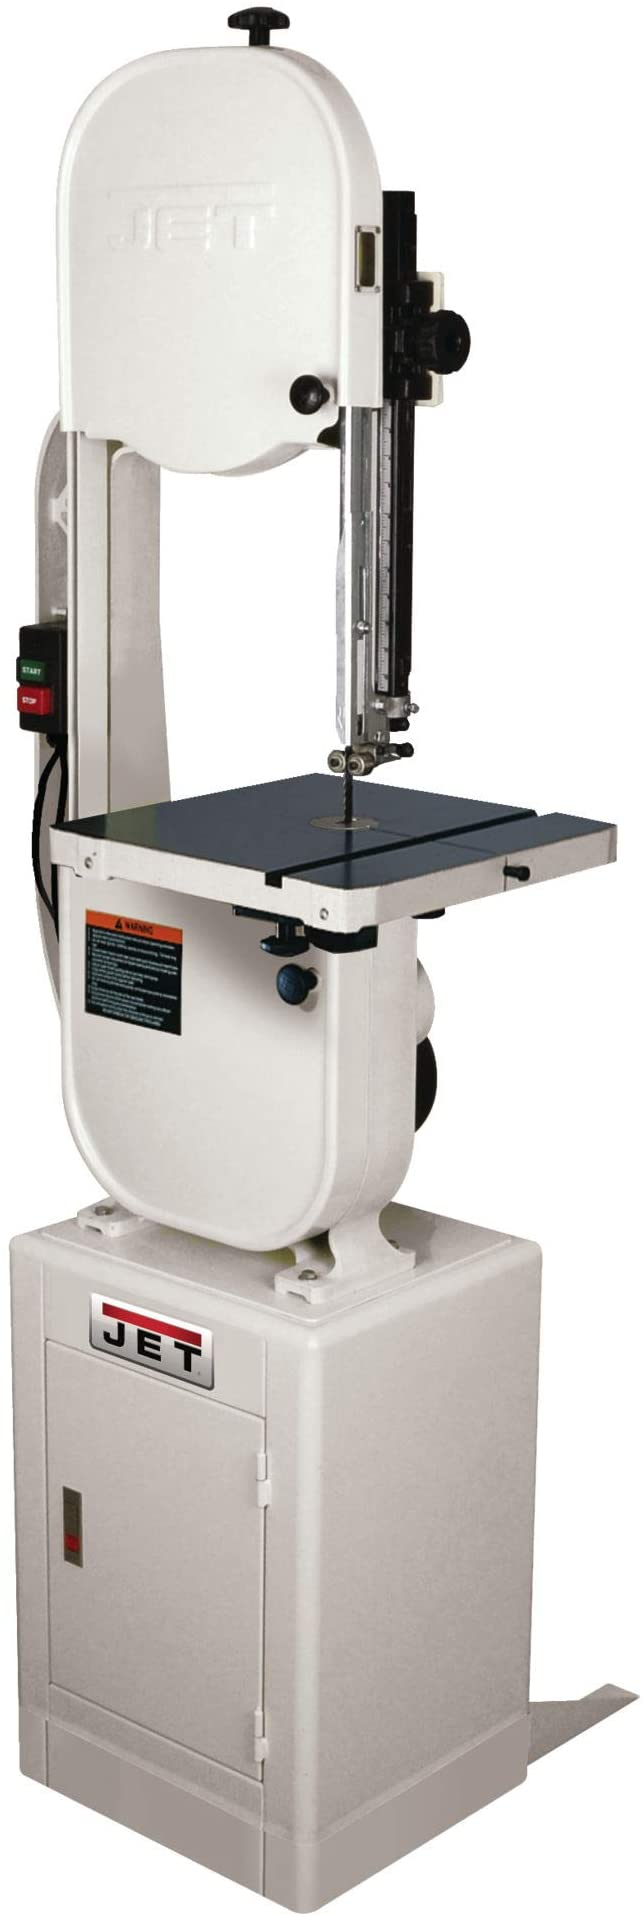 Jet JWBS-14DXPRO Deluxe Pro Band Saw